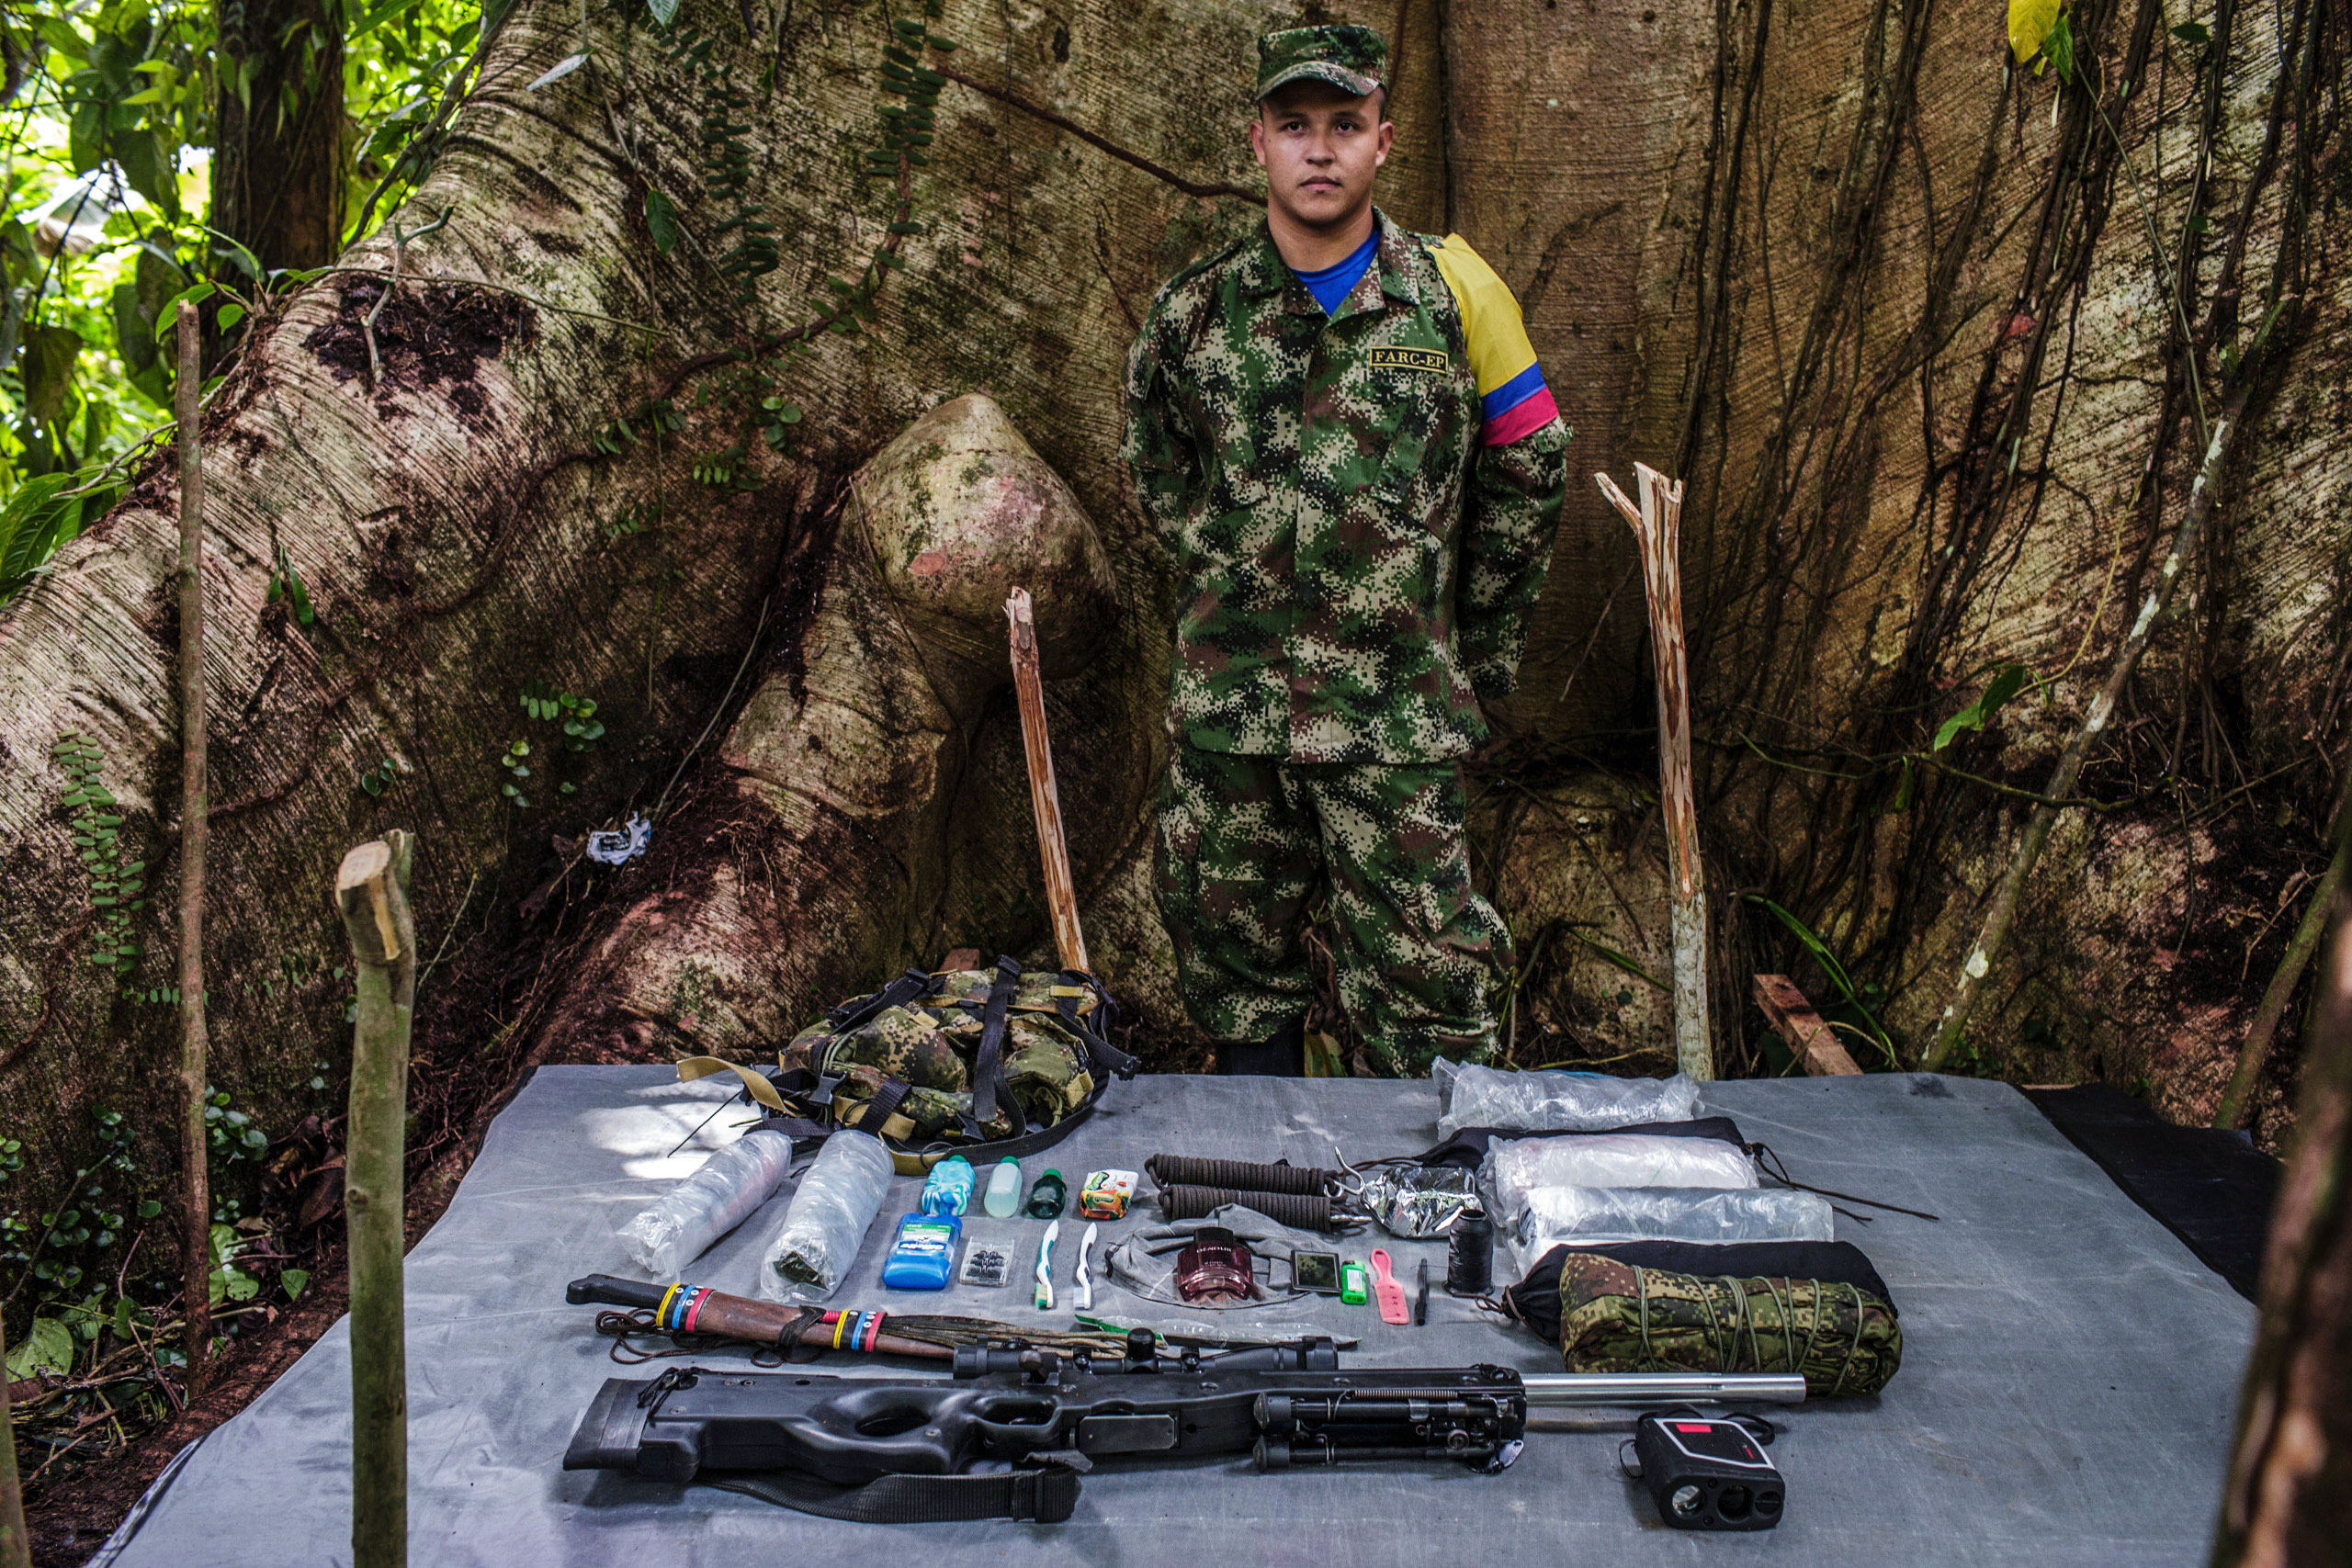 Junior   is a 20-year old, who has been with FARC for seven years.                                He has attended several training courses to learn sniper fire and accuracy for special weapons. He uses tactical binoculars to calculate the distance between the target and the shooter. In order to move through the jungle swiftly, his luggage is lightweight.